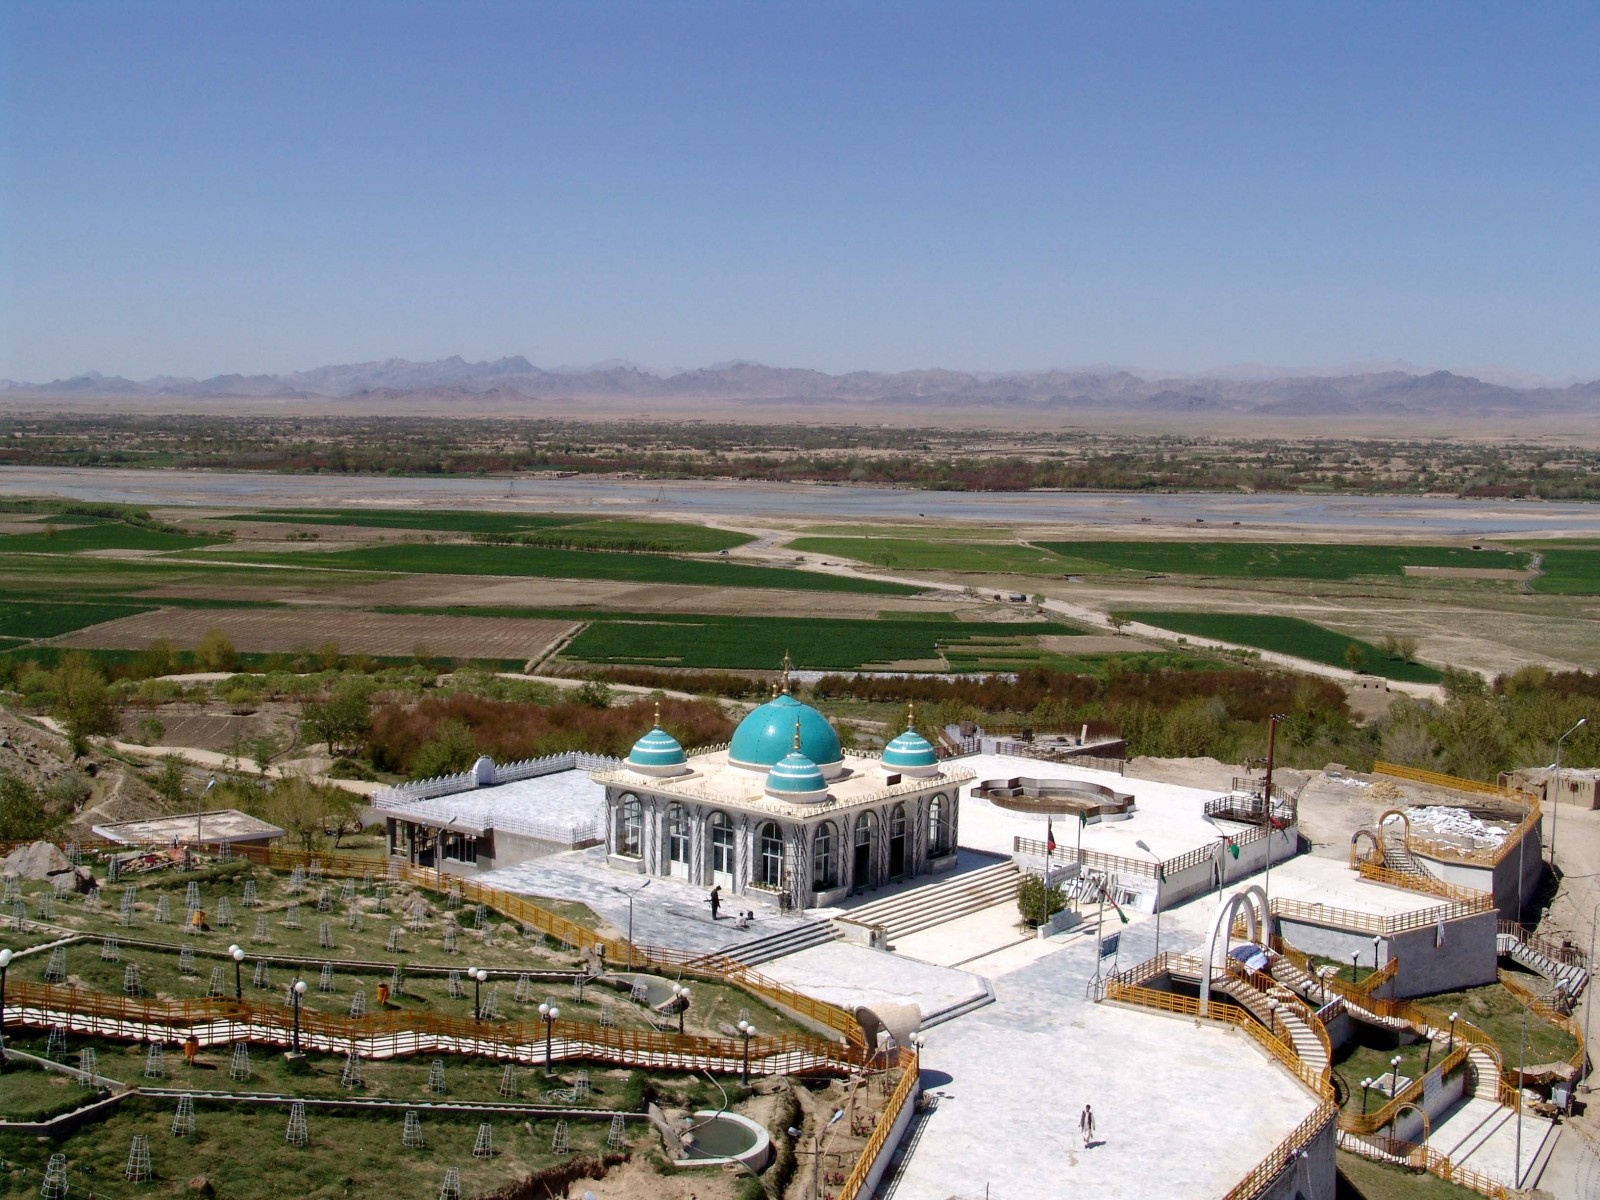 Baba Wali Shrine Kandahar, Kandahar Scenes | A view from central Kandahar, Afghanistan!!!